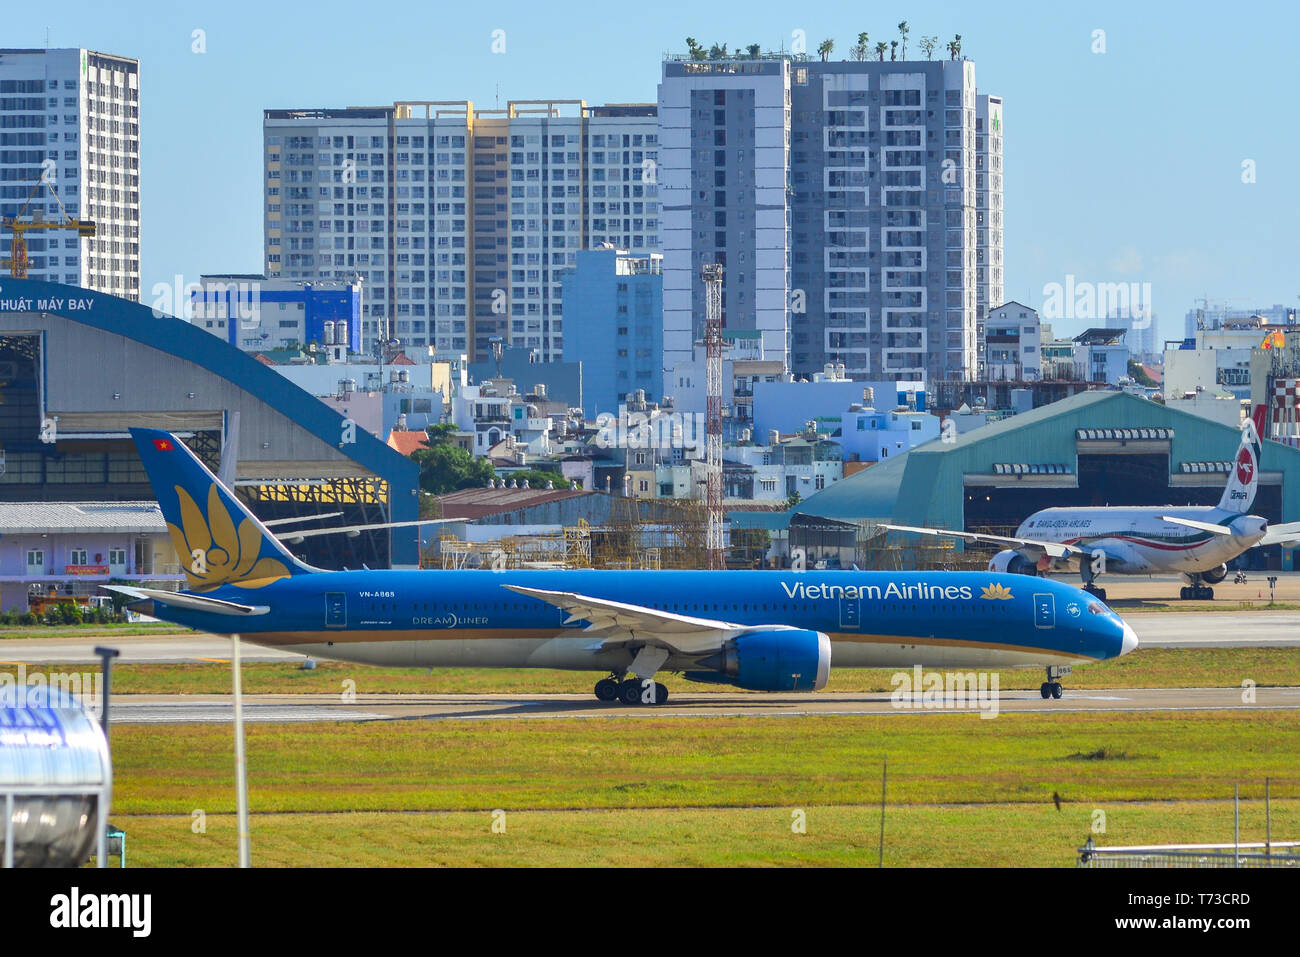 Saigon Vietnam Feb 19 2019 Vn A865 Vietnam Airlines Boeing 787 9 Dreamliner Taxiing On Runway At Tan Son Nhat Airport Sgn Stock Photo Alamy